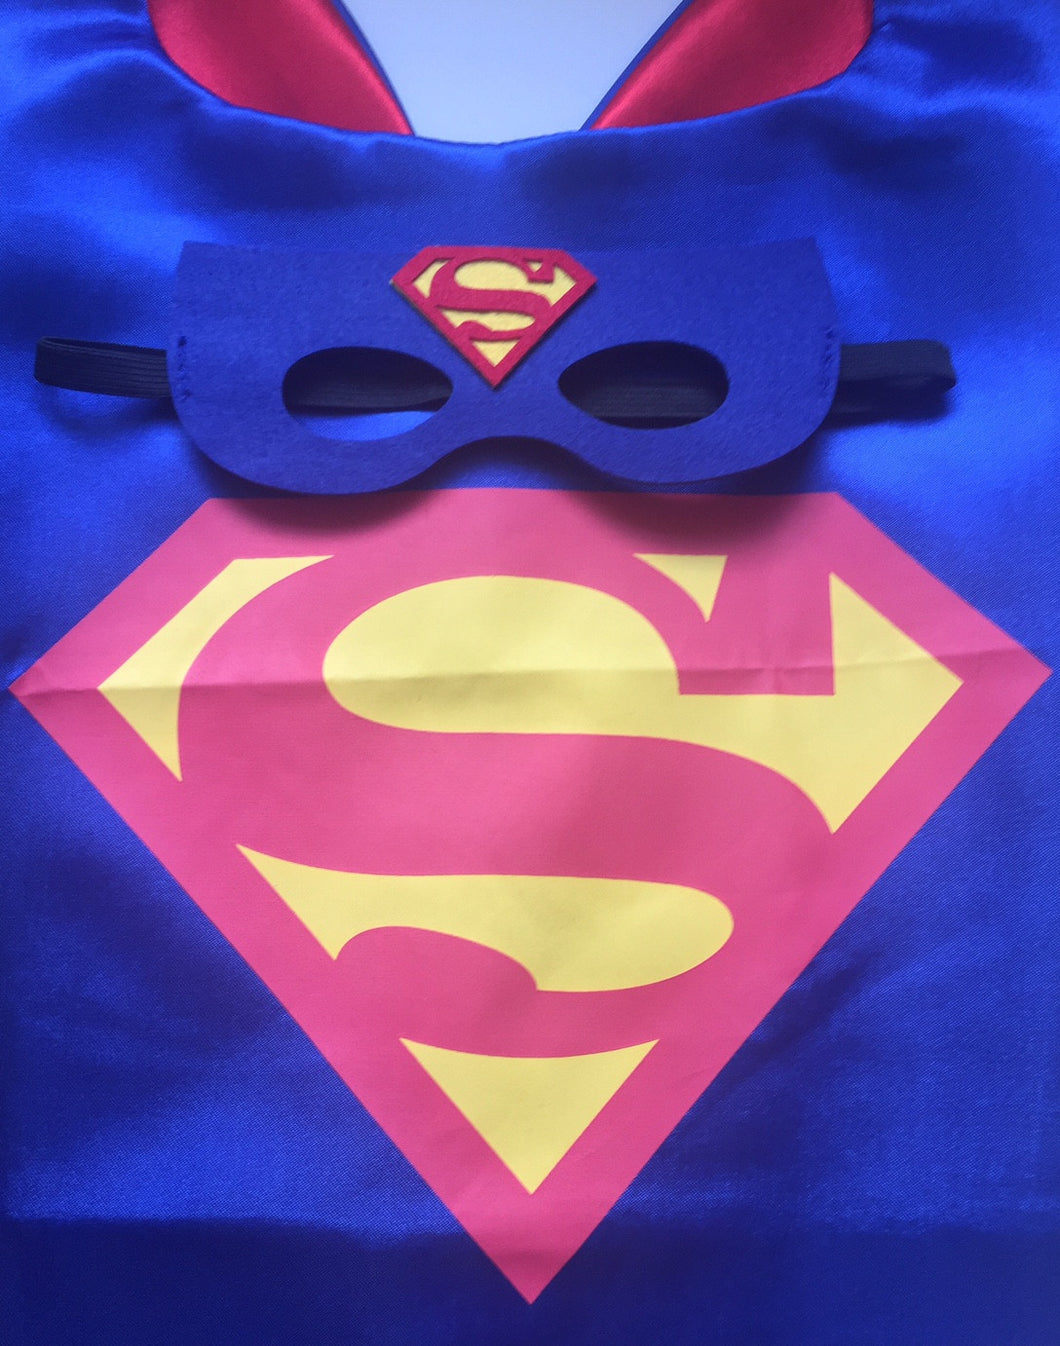 Superman Cape Mask Set, Superhero Party Favors, Superhero Birthday, Superman Party, Superhero Party Favors, Superman Party, Superhero Costume, Kids Superman Costume